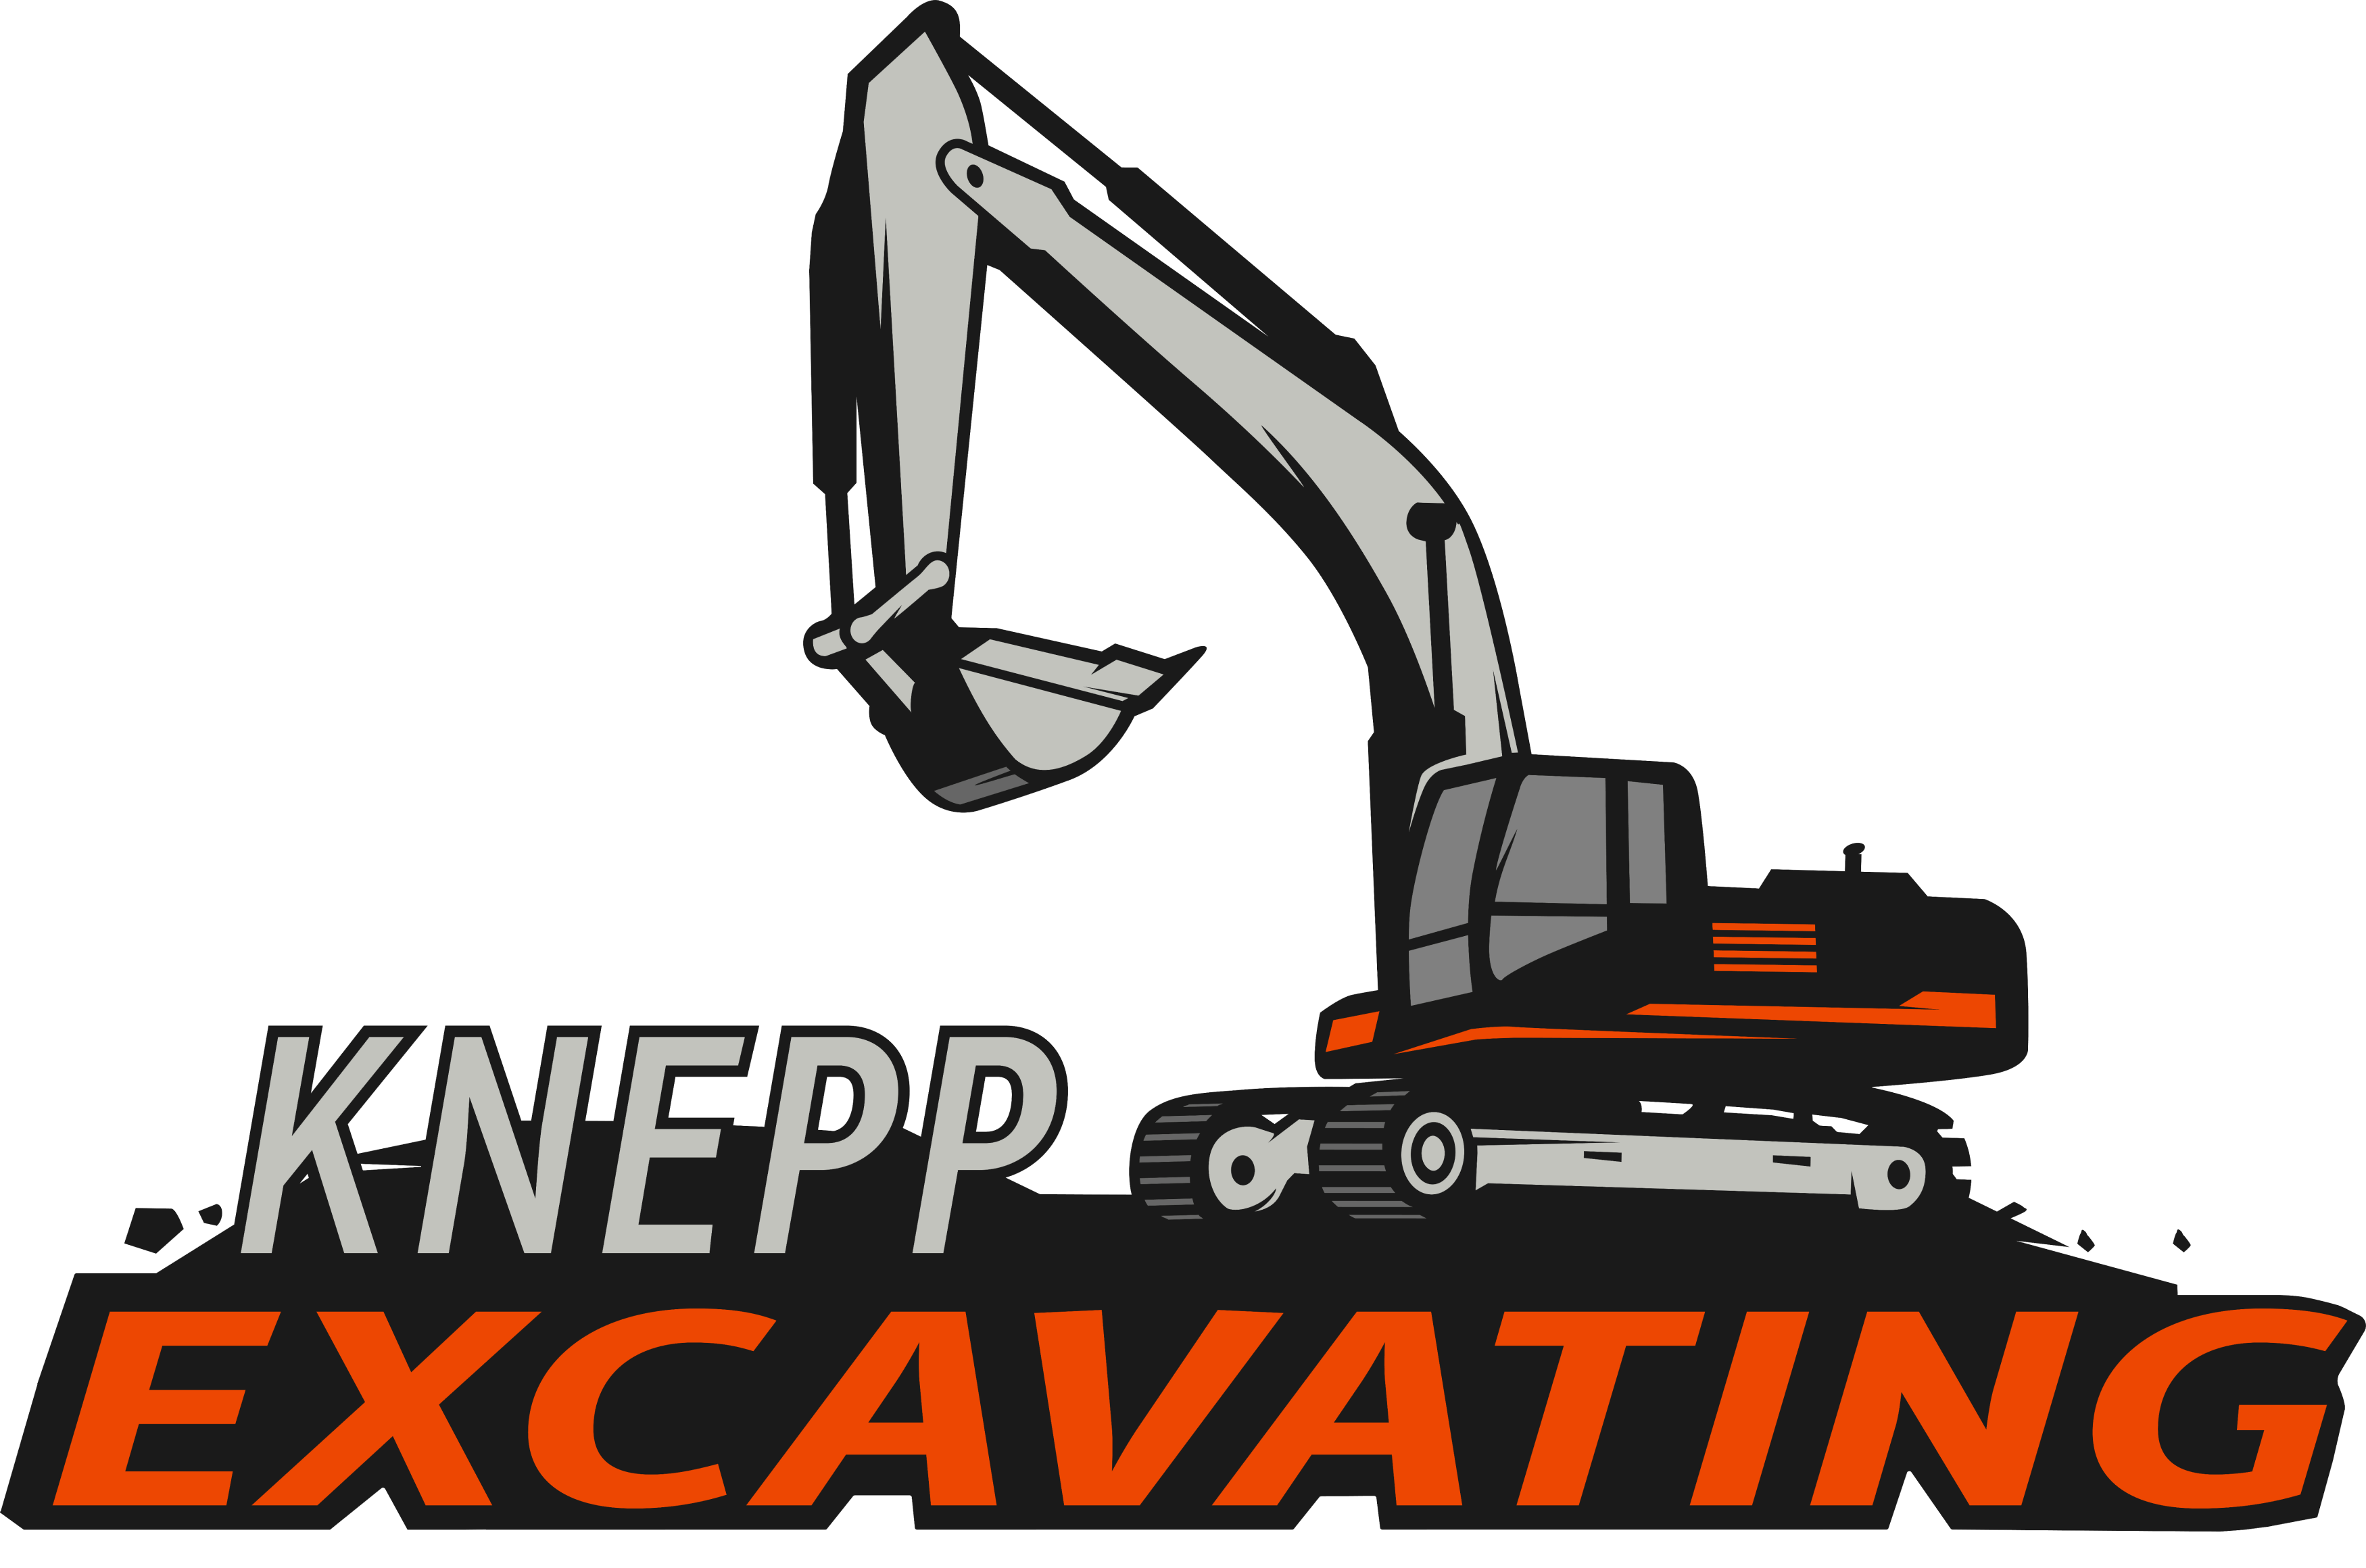 Knepp Excavating